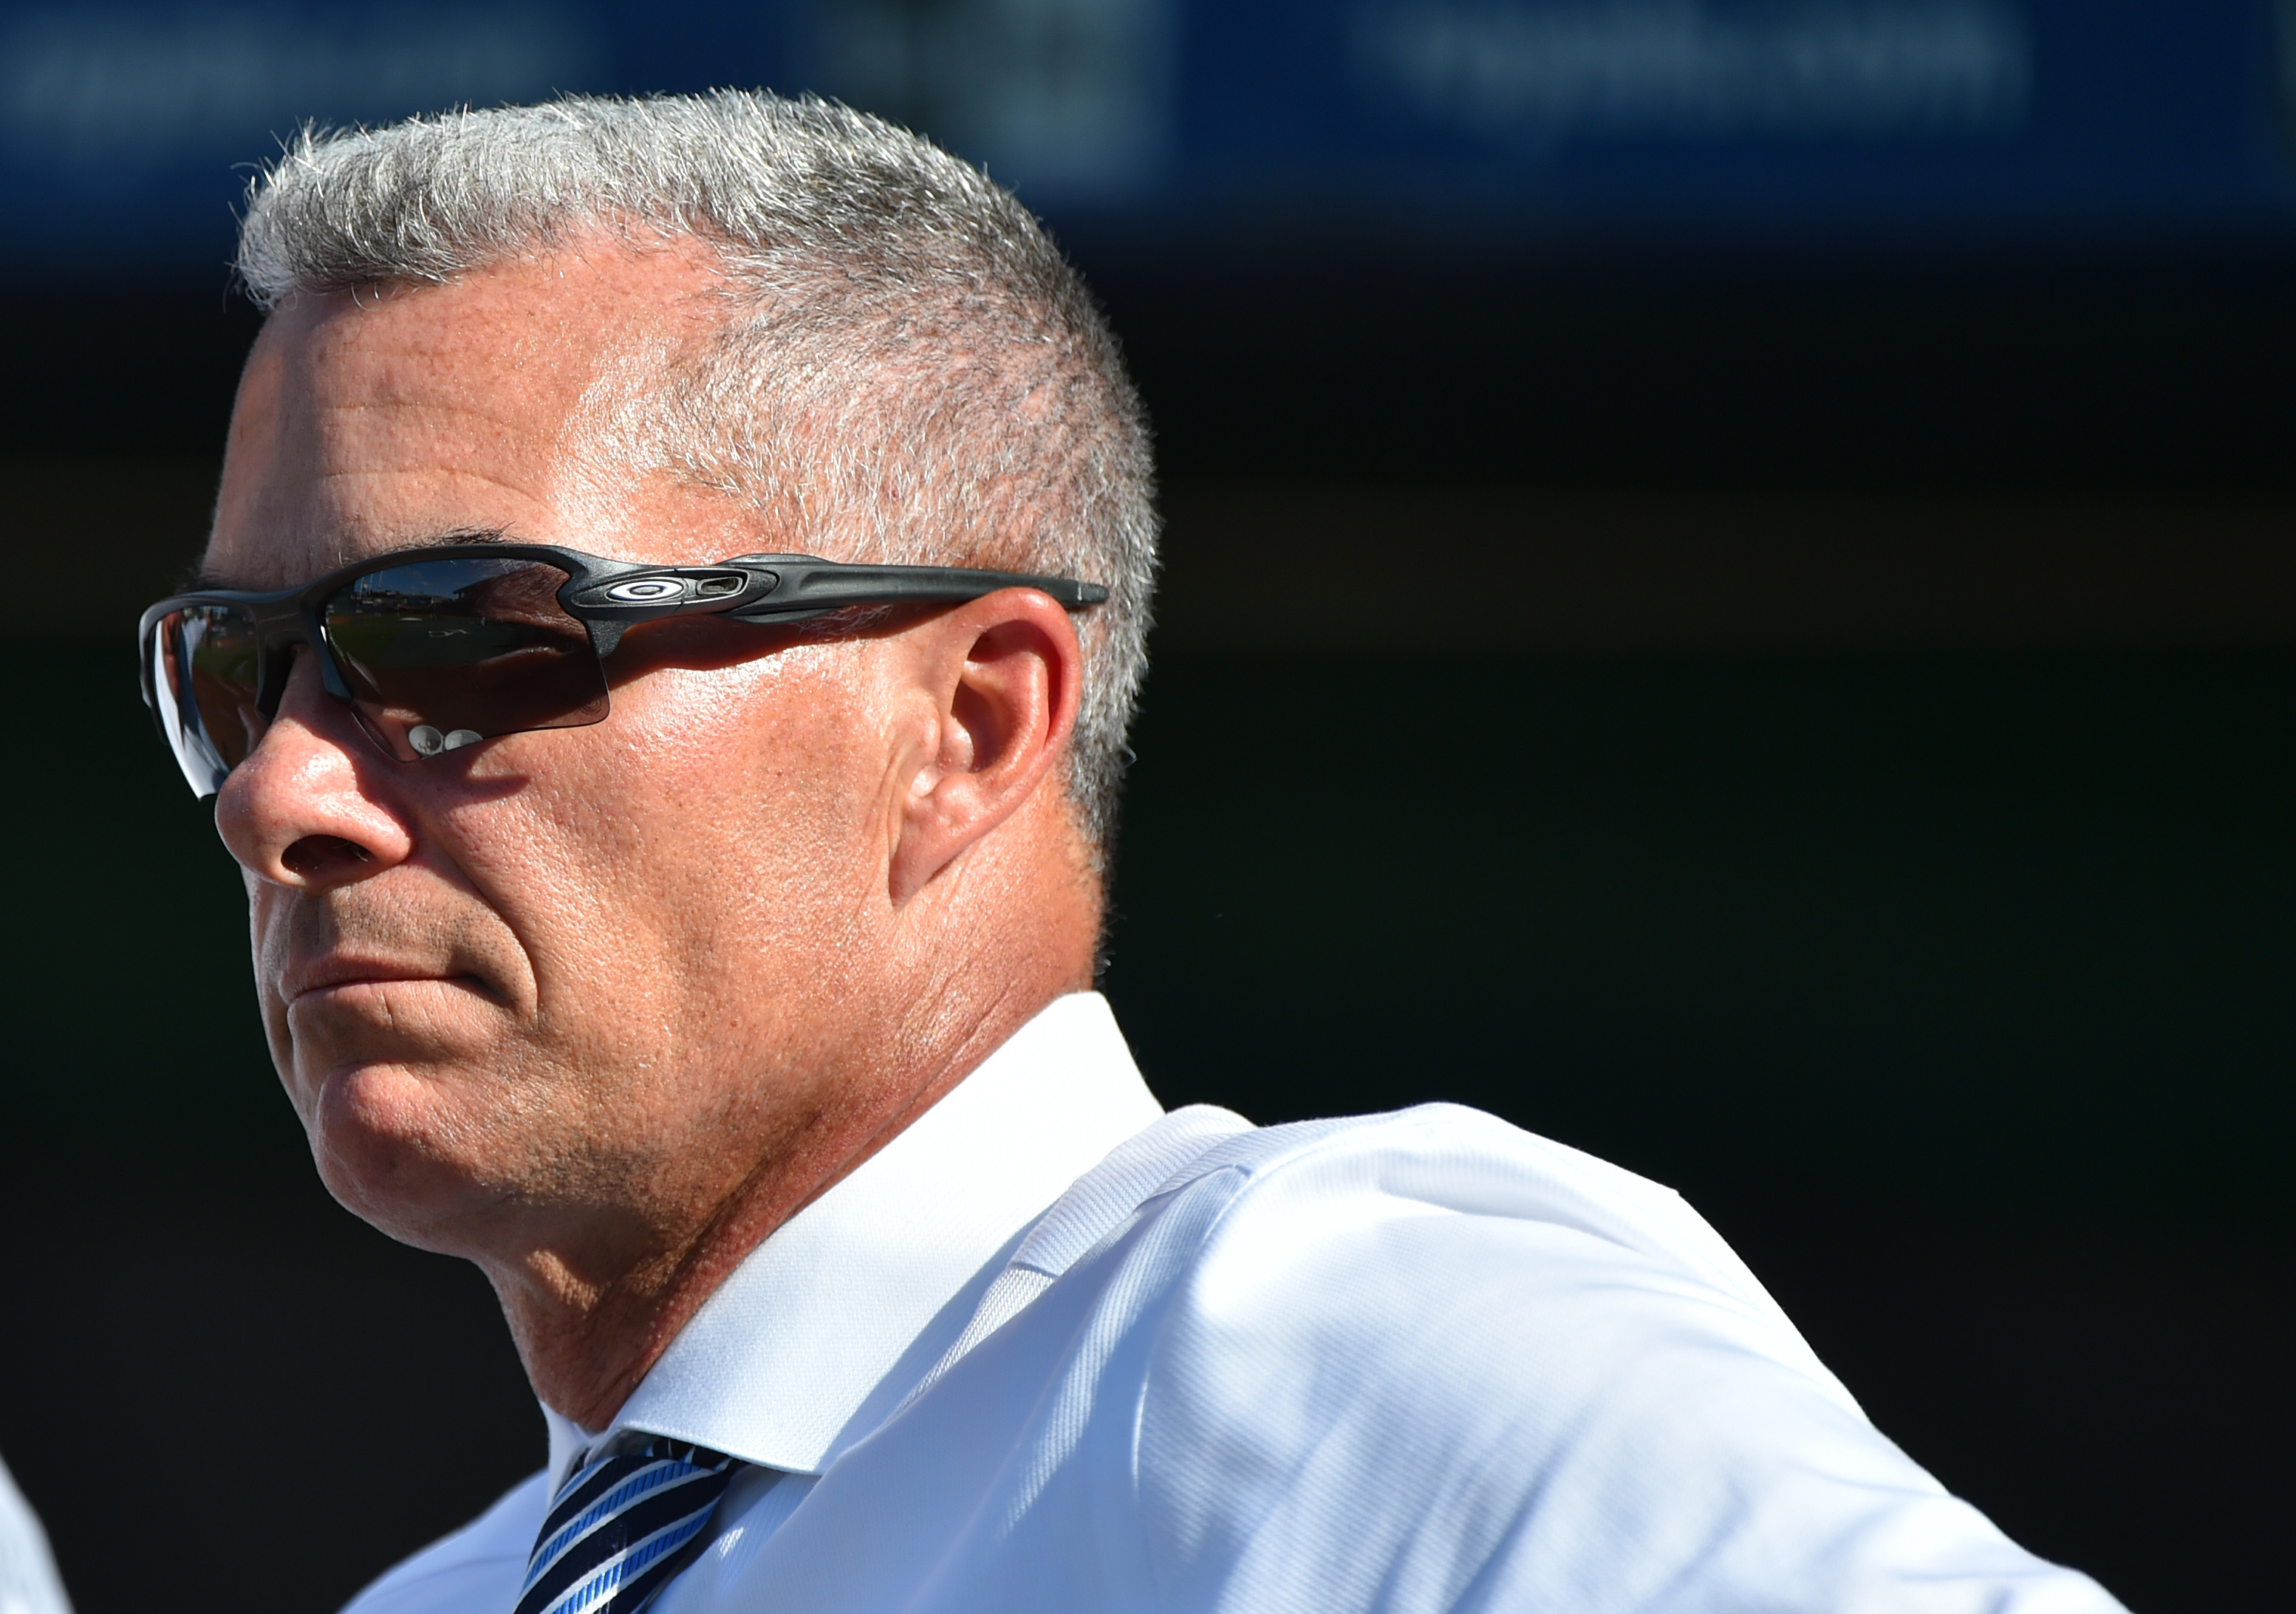 General manager Dayton Moore of the Kansas City Royals watches batting practice prior to a game against the Baltimore Orioles at Kauffman Stadium on August 30, 2019 in Kansas City, Missouri.